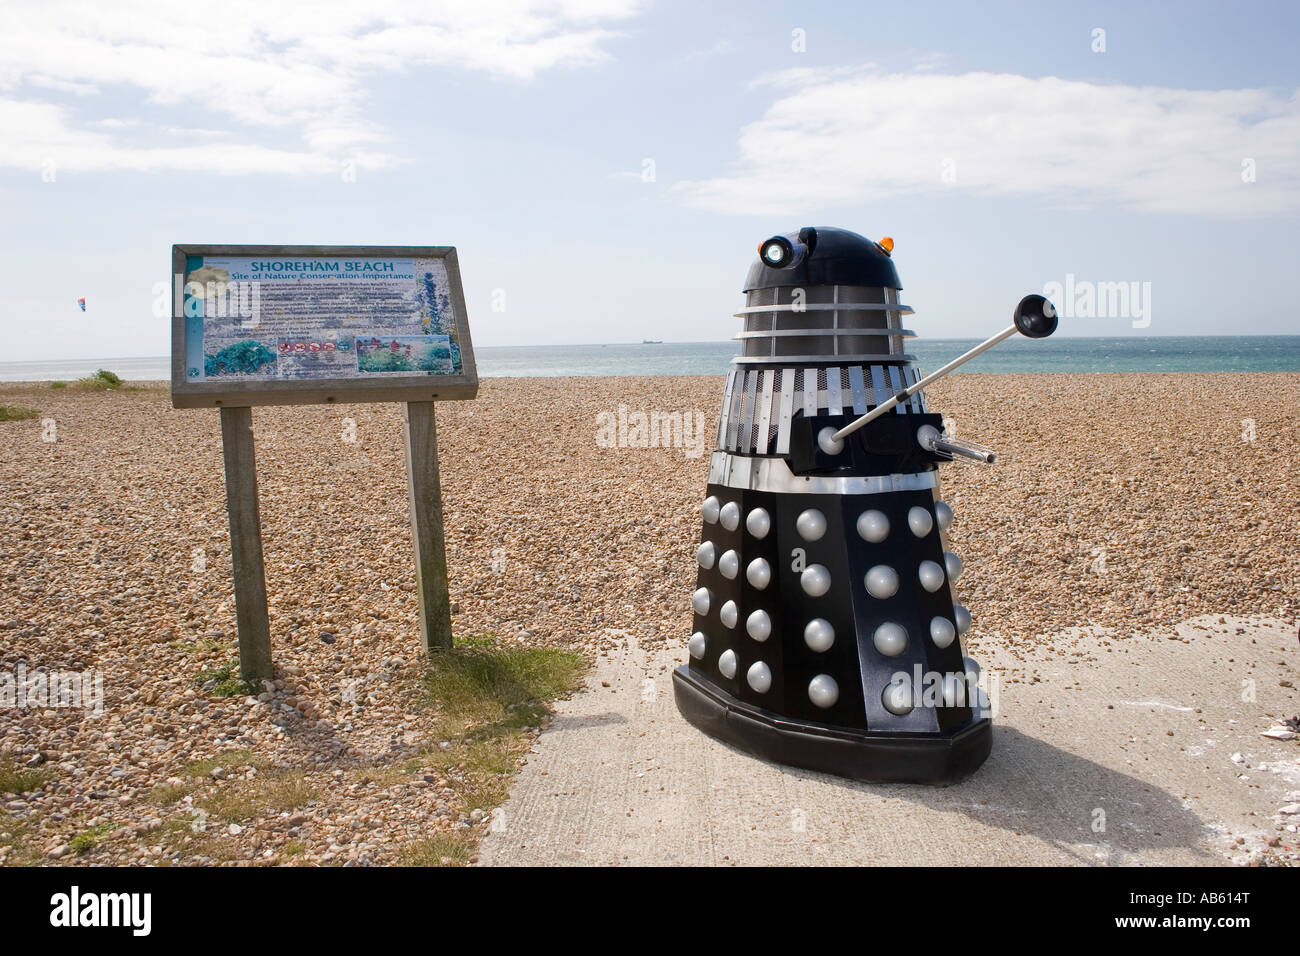 Dalek from Dr Who series on shoreham beach west sussex uk - Stock Image